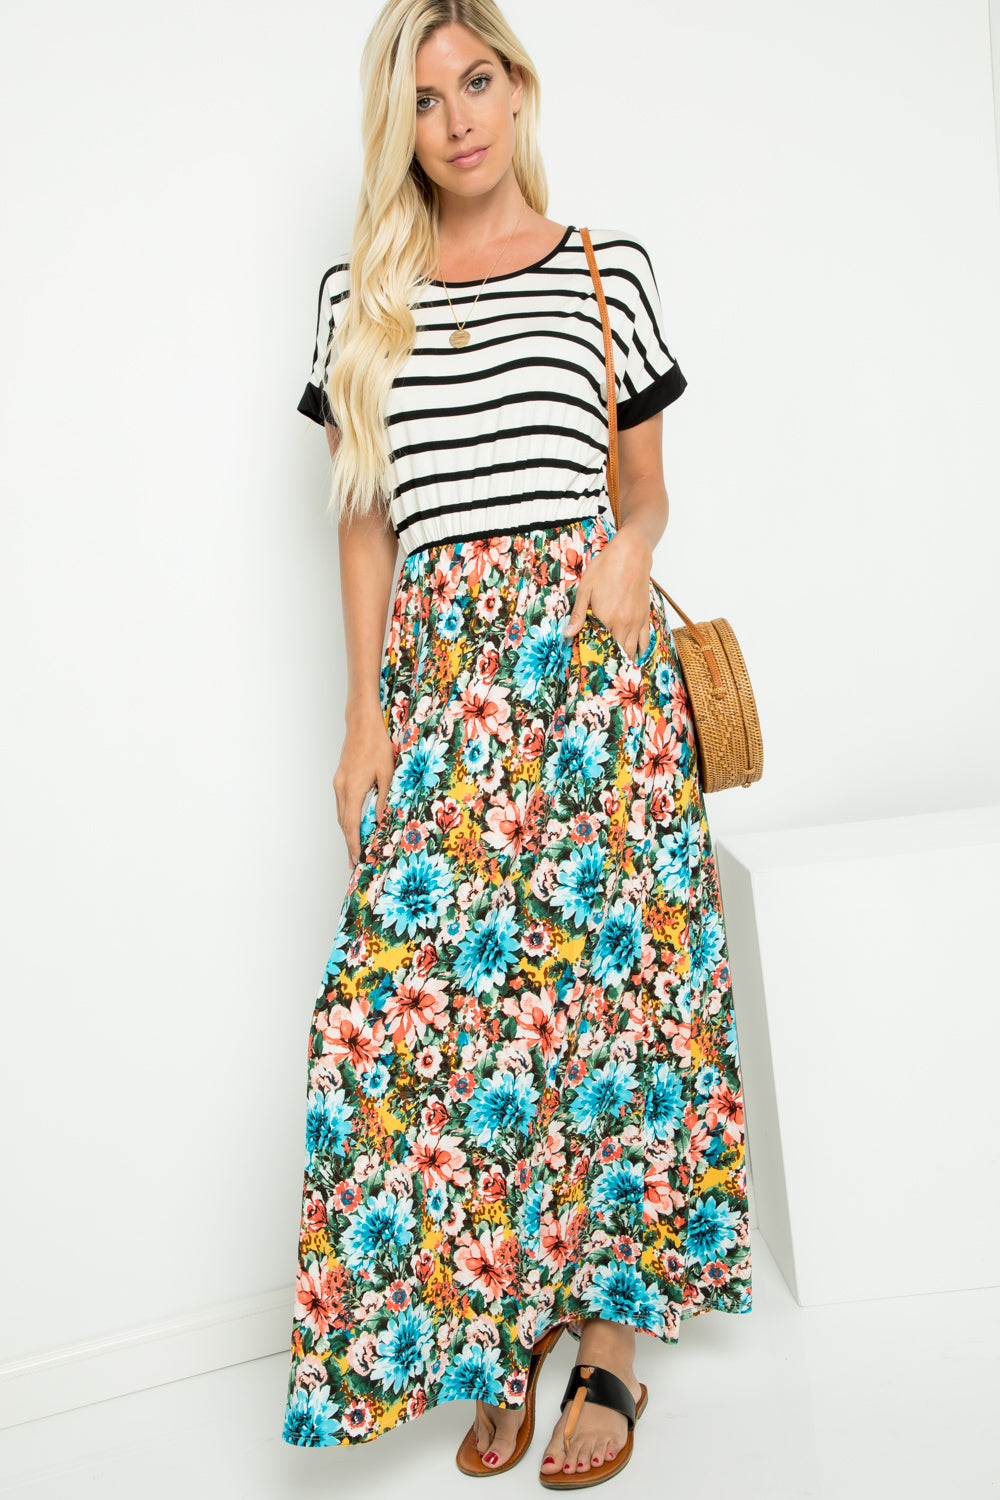 Black Striped and Floral Maxi Dress